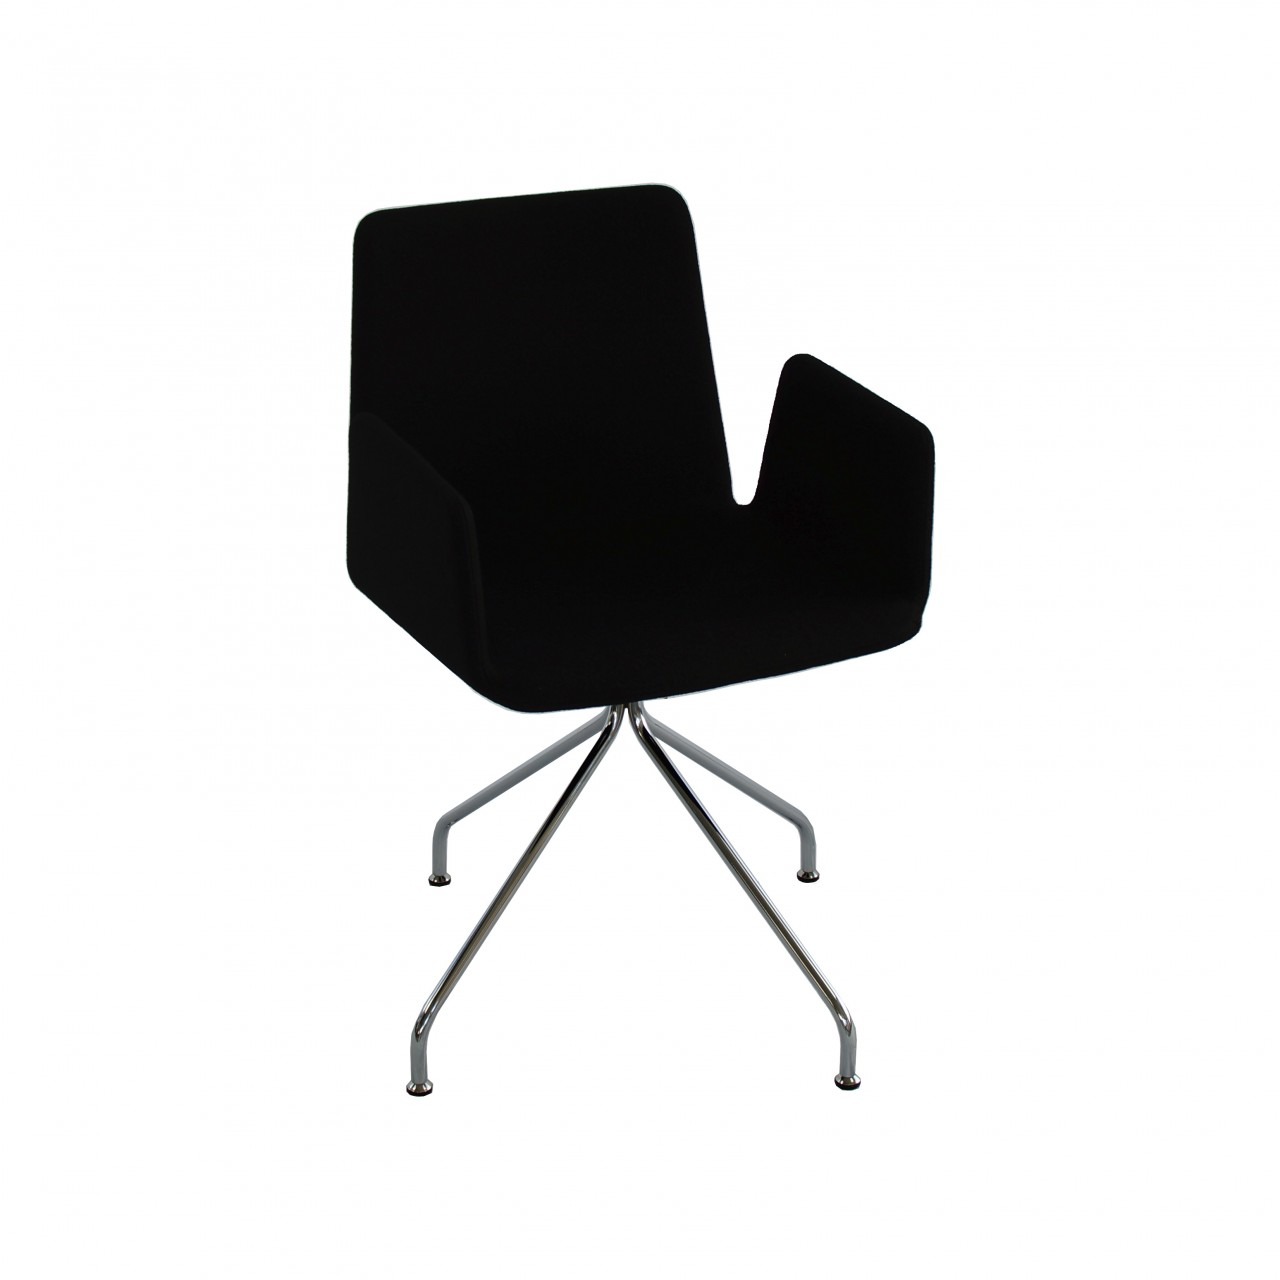 WING swivel chair/ Bezug Europost